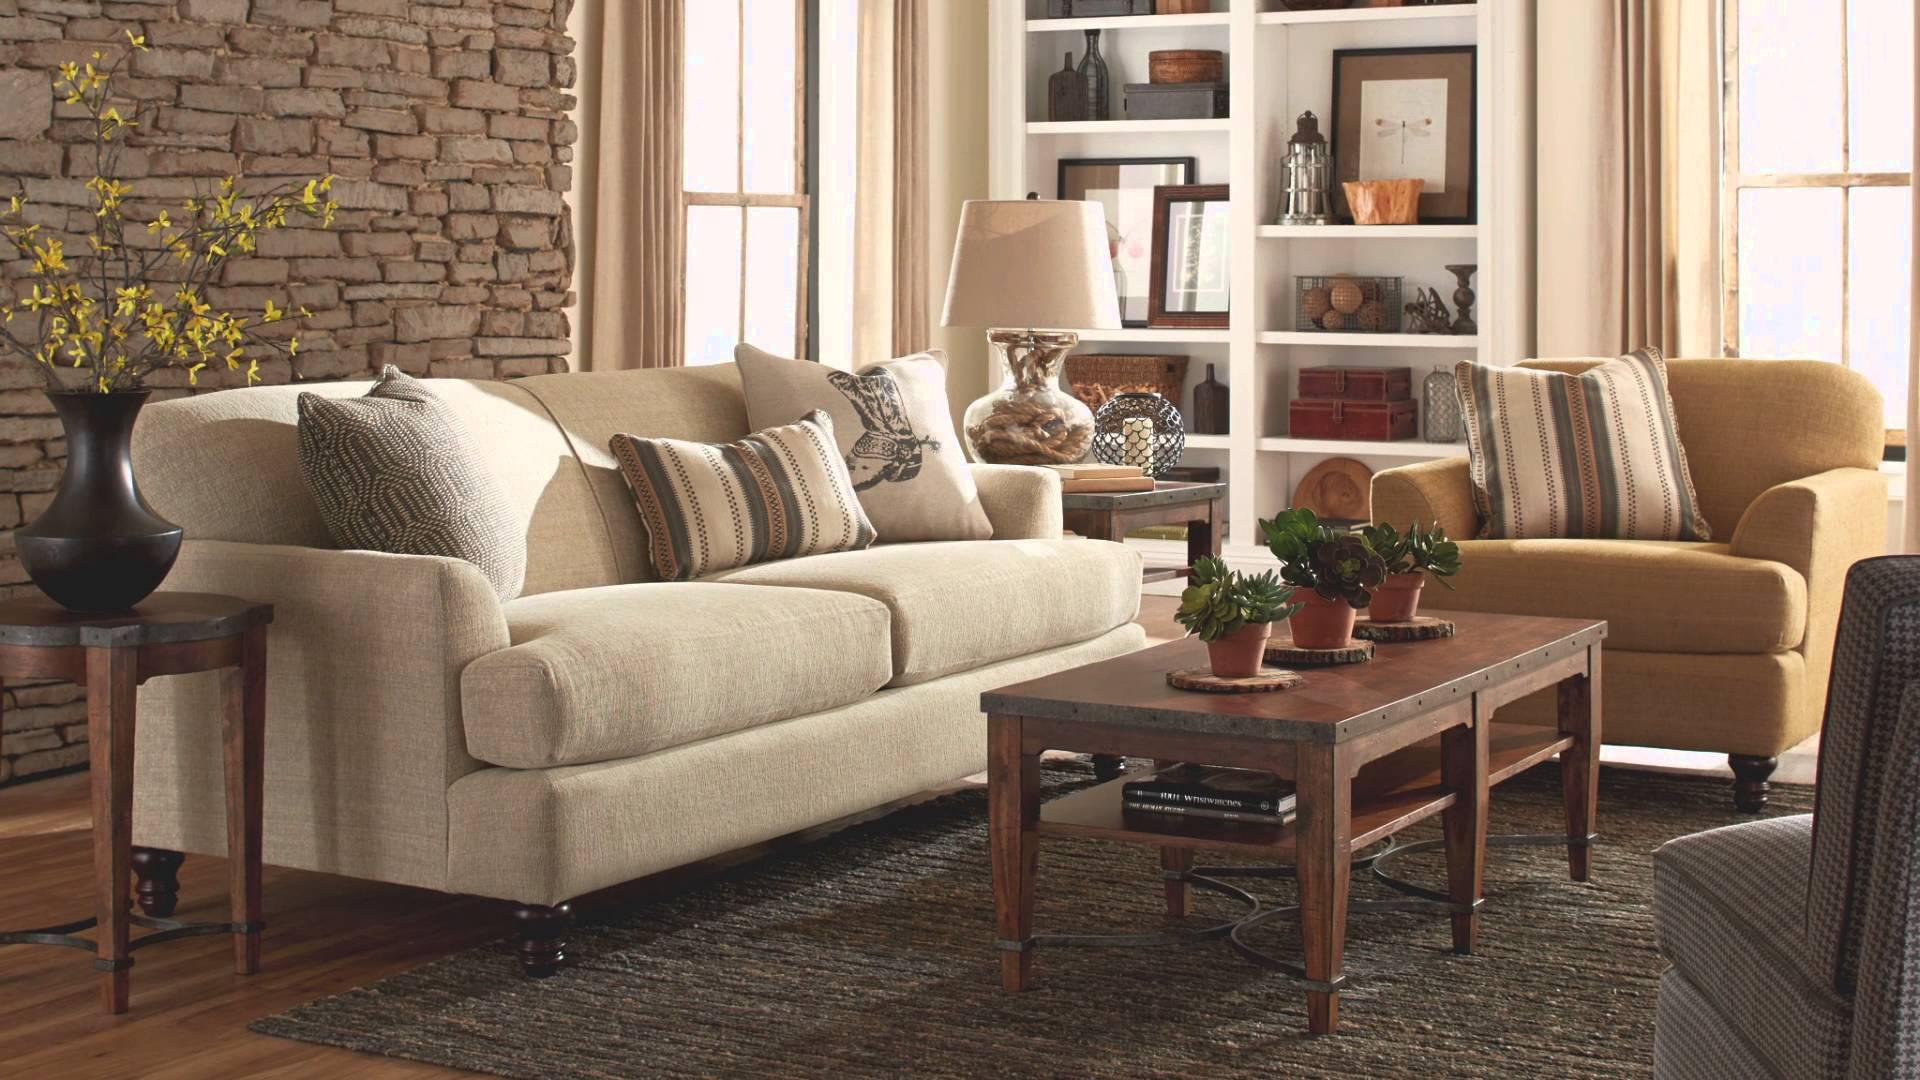 Home Accessories Classy Old Brick Furniture With Elegant Design For